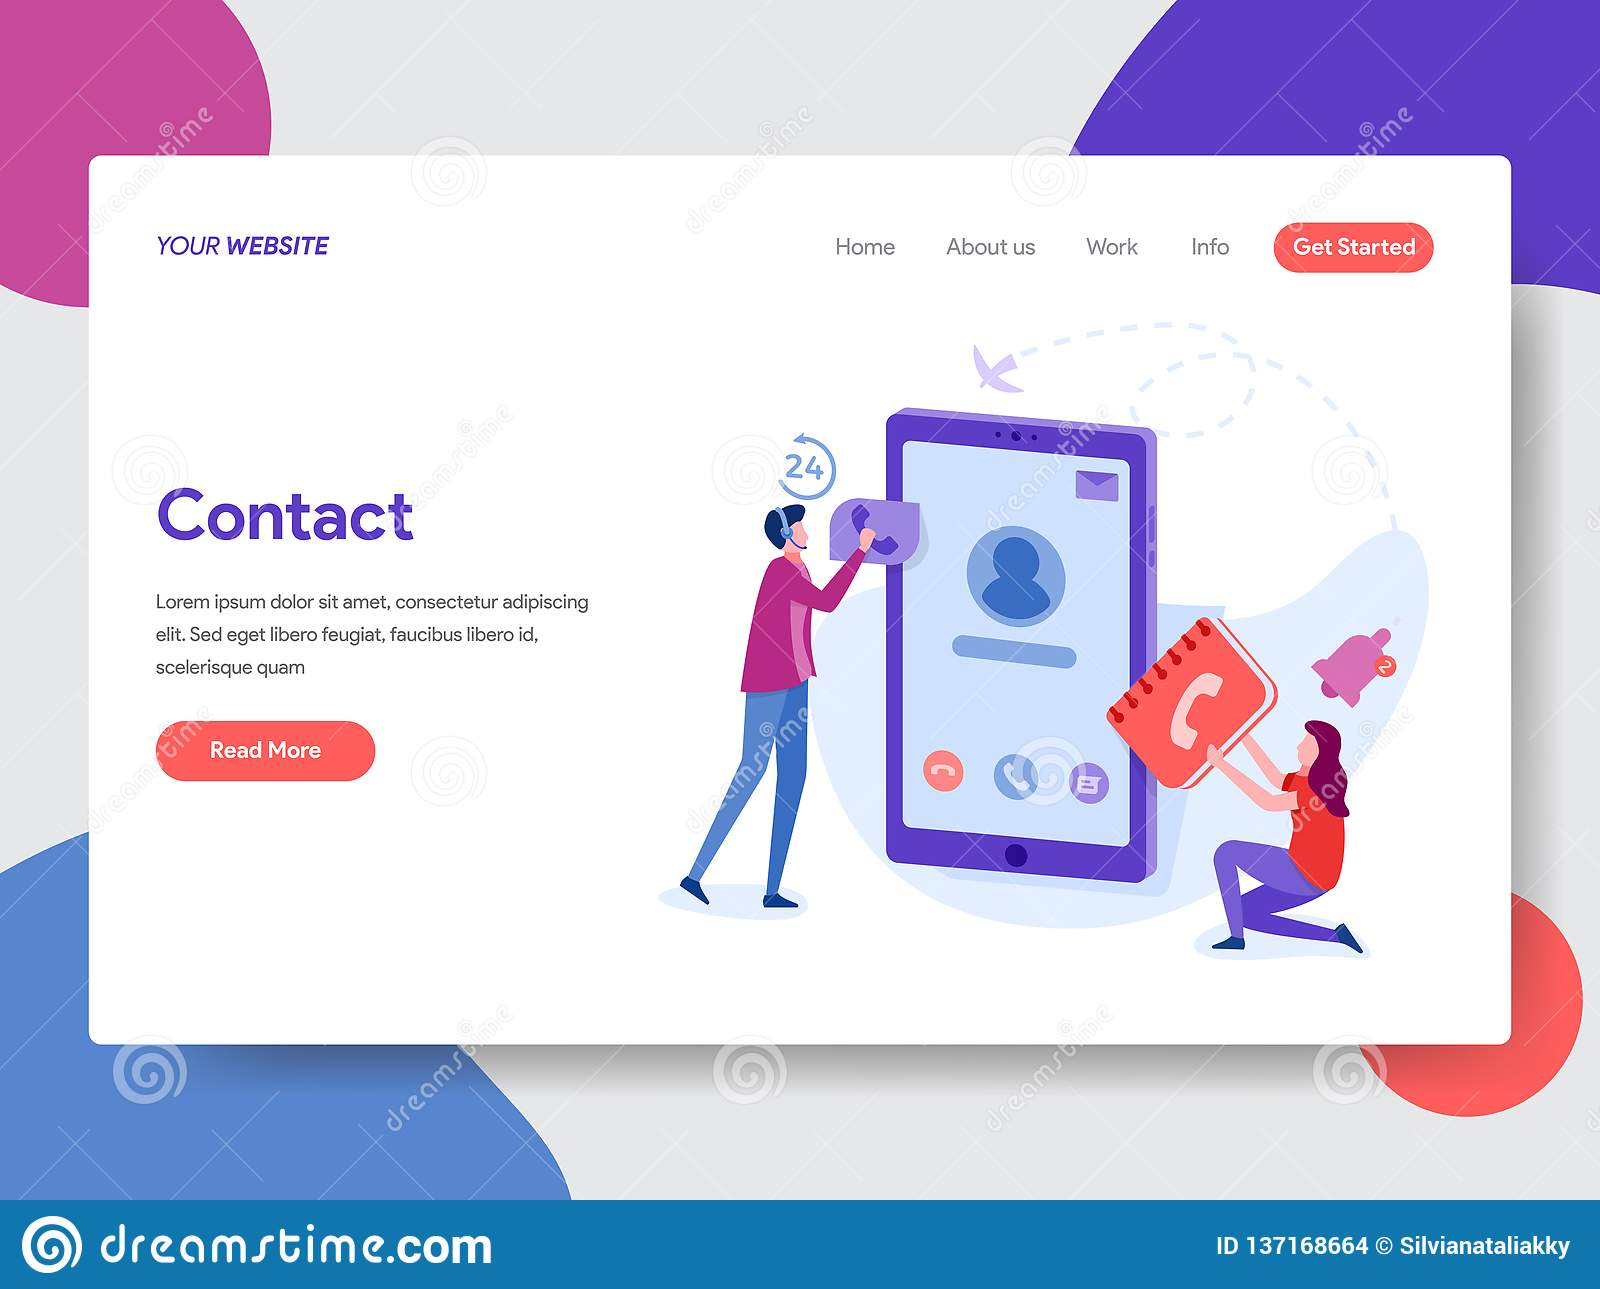 Landing page template of Phone Contacts Illustration. Modern flat design concept of web page design for website and mobile website